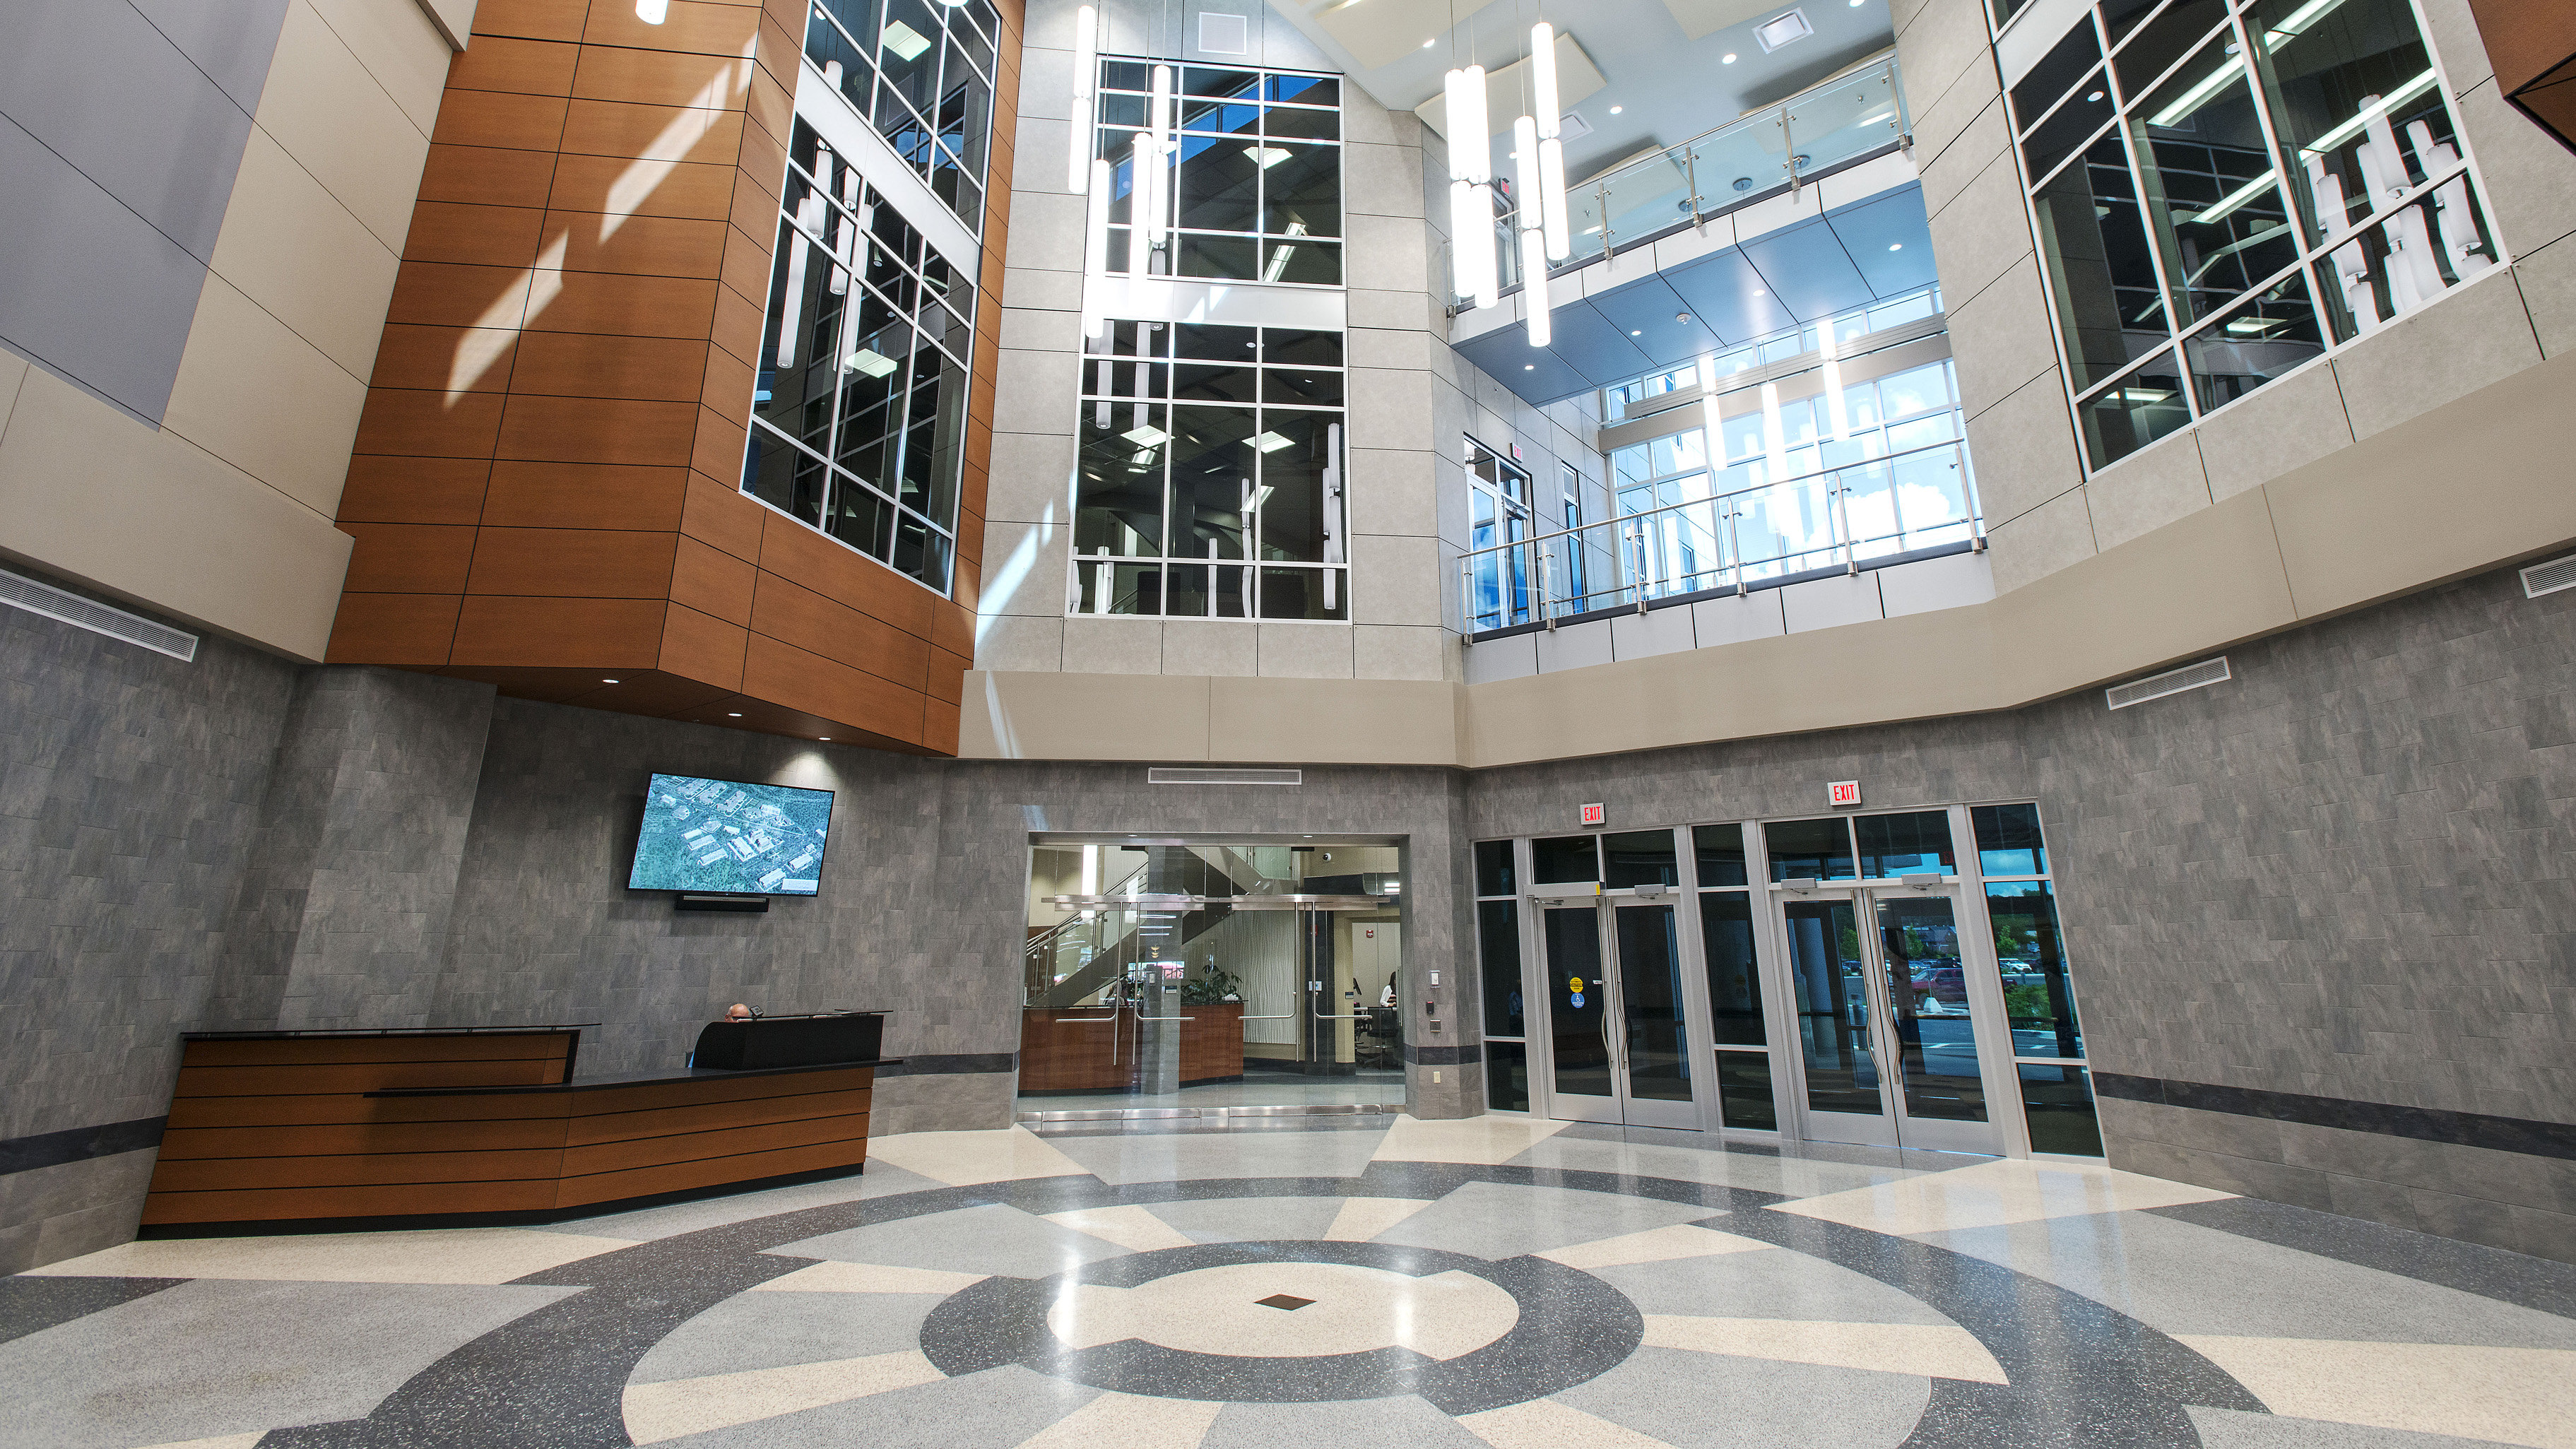 Terrazzo in commercial buildings archives ncta for Certified professional building designer